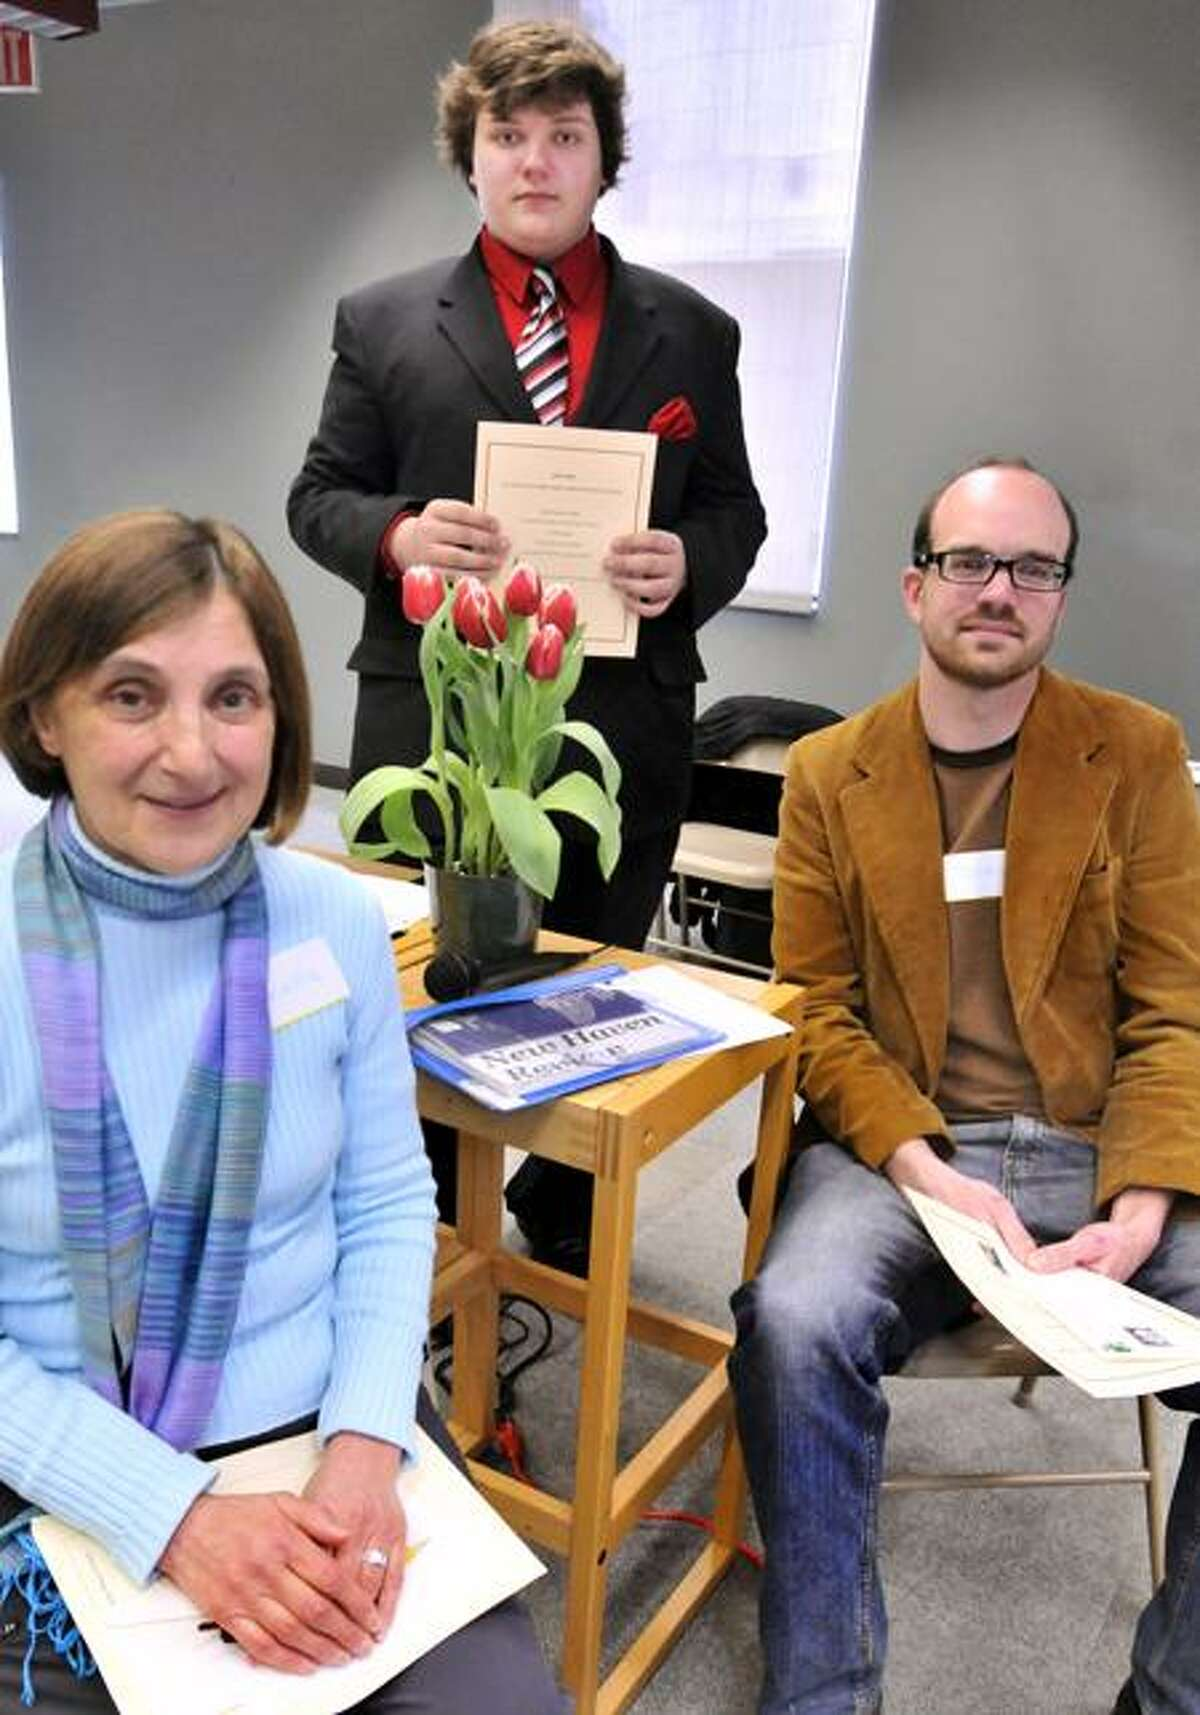 NEW HAVEN-Left to Right: Gabriella Brand, John Cubeta Zibluk, and Dennis Wilson, winners of the New Haven Library's poetry contest. Melanie Stengel/Register